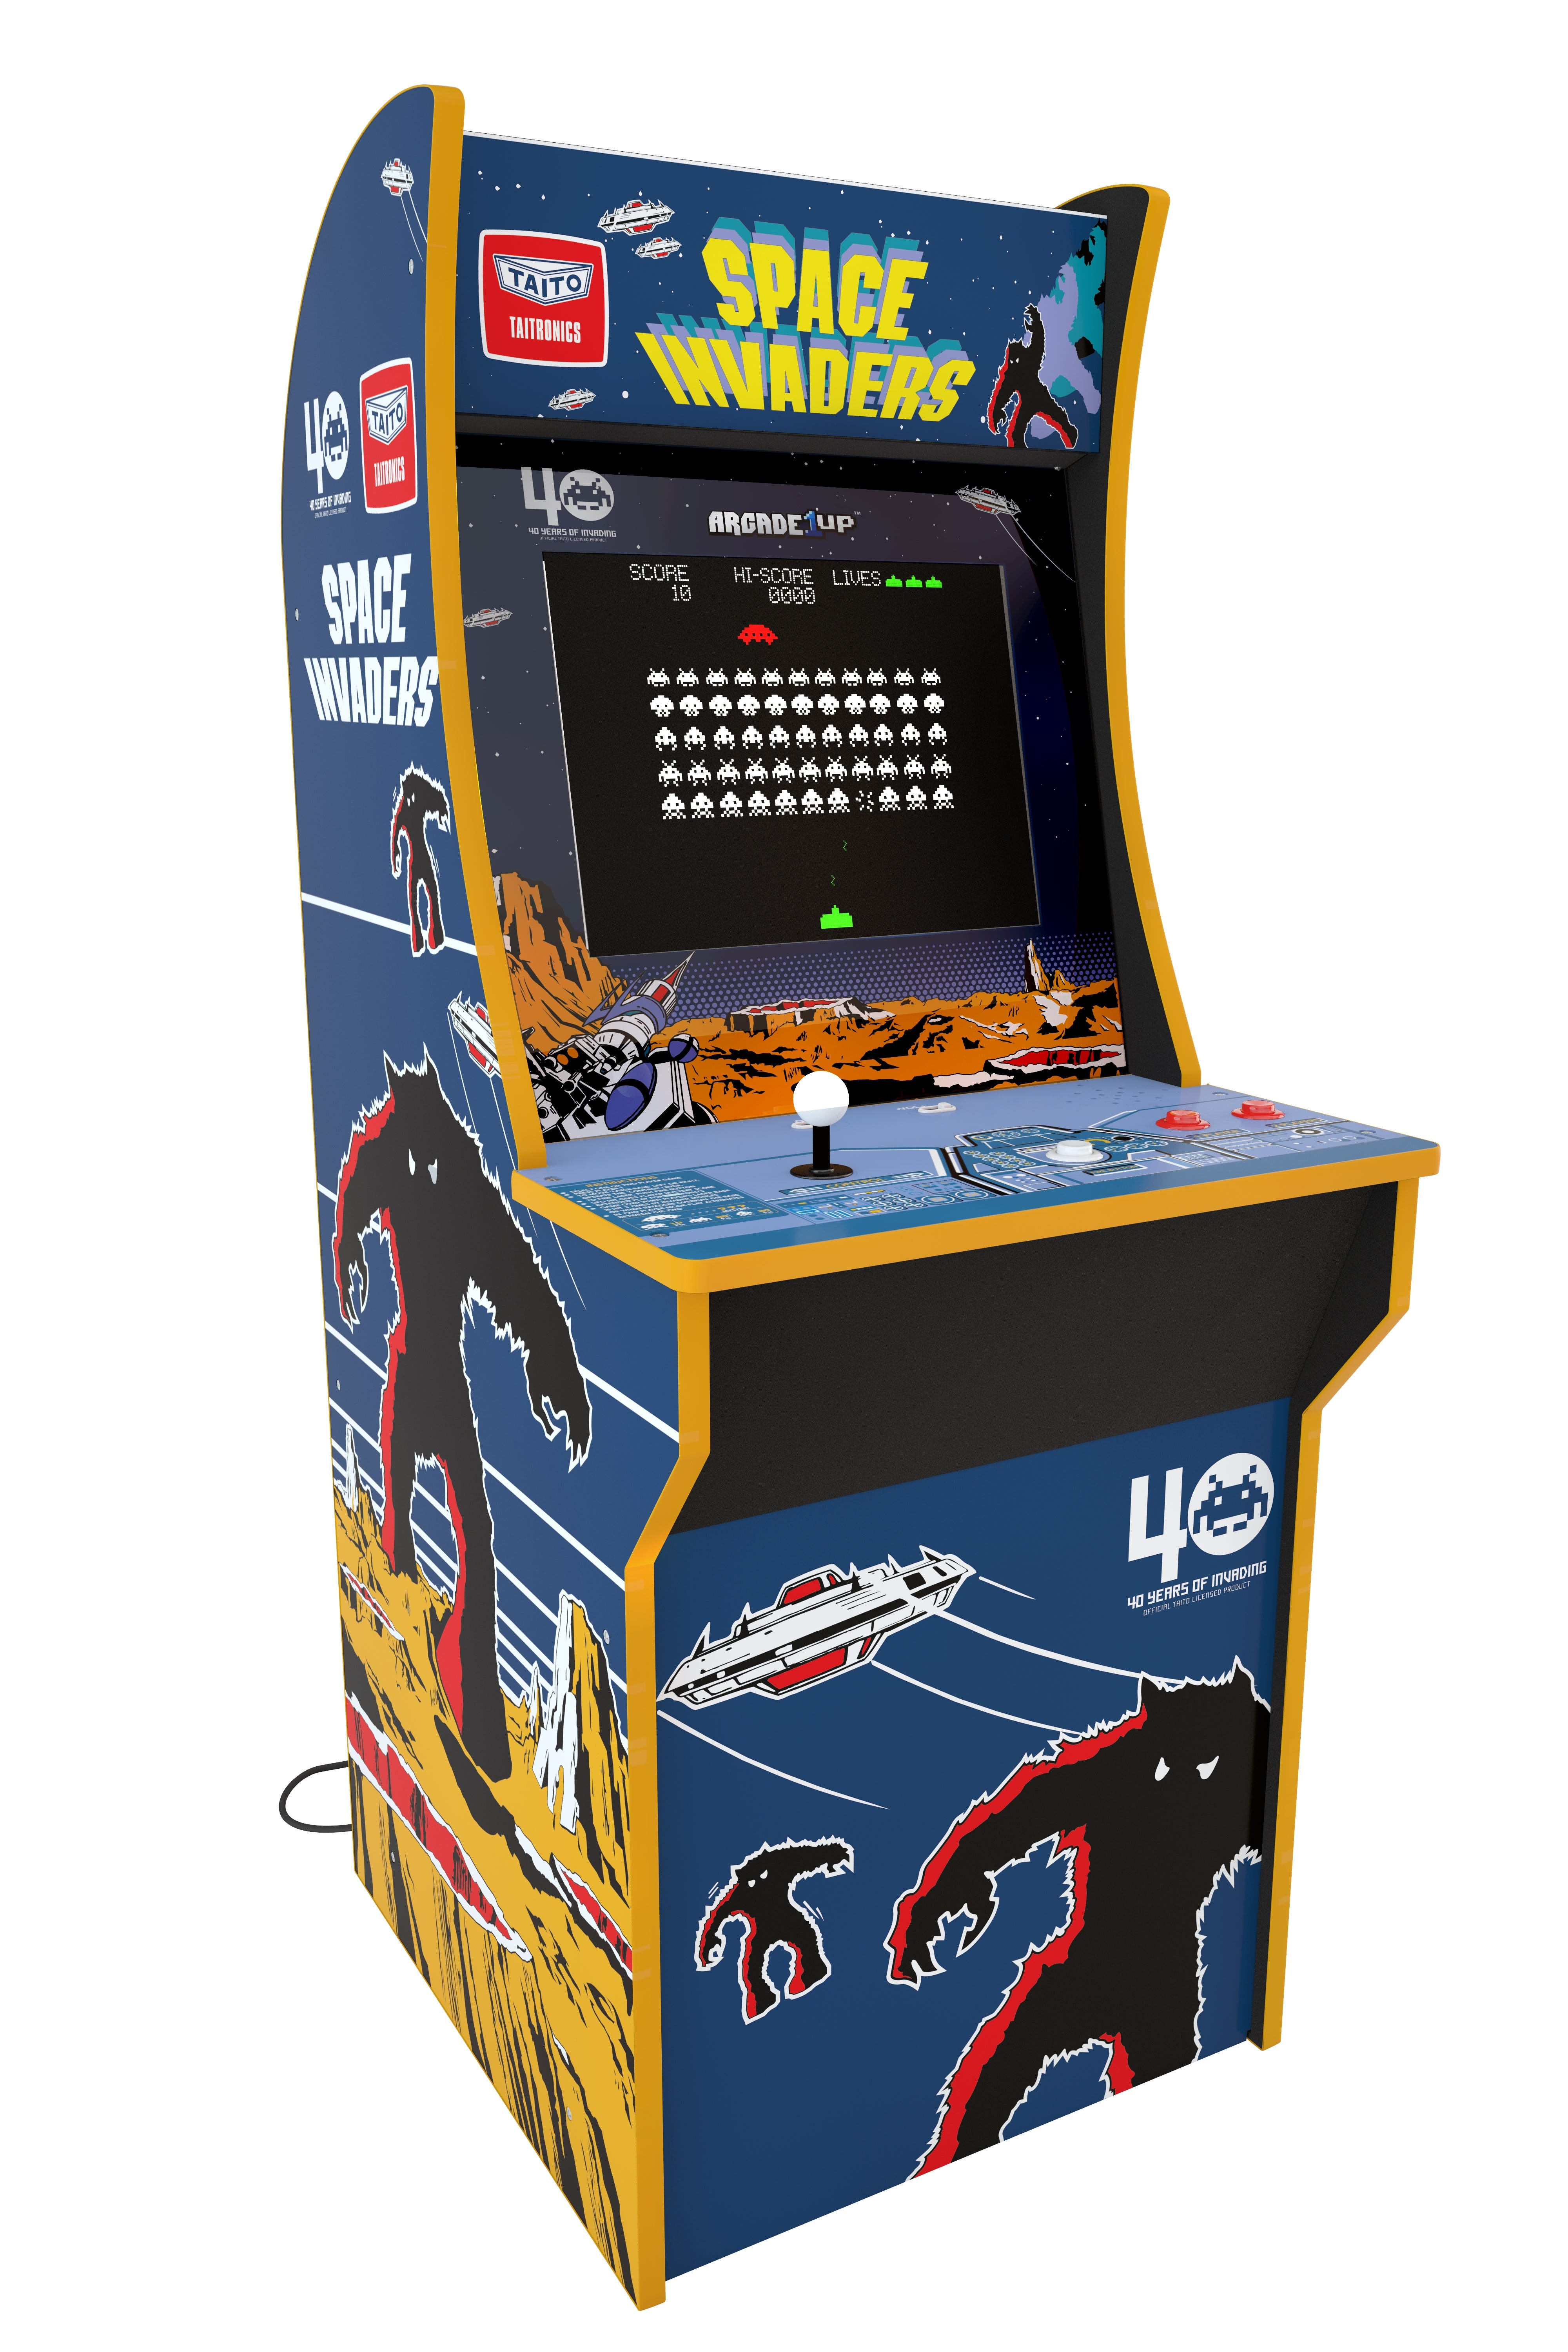 Pac Man Space Invaders And Other Retro Video Games Get New Lives